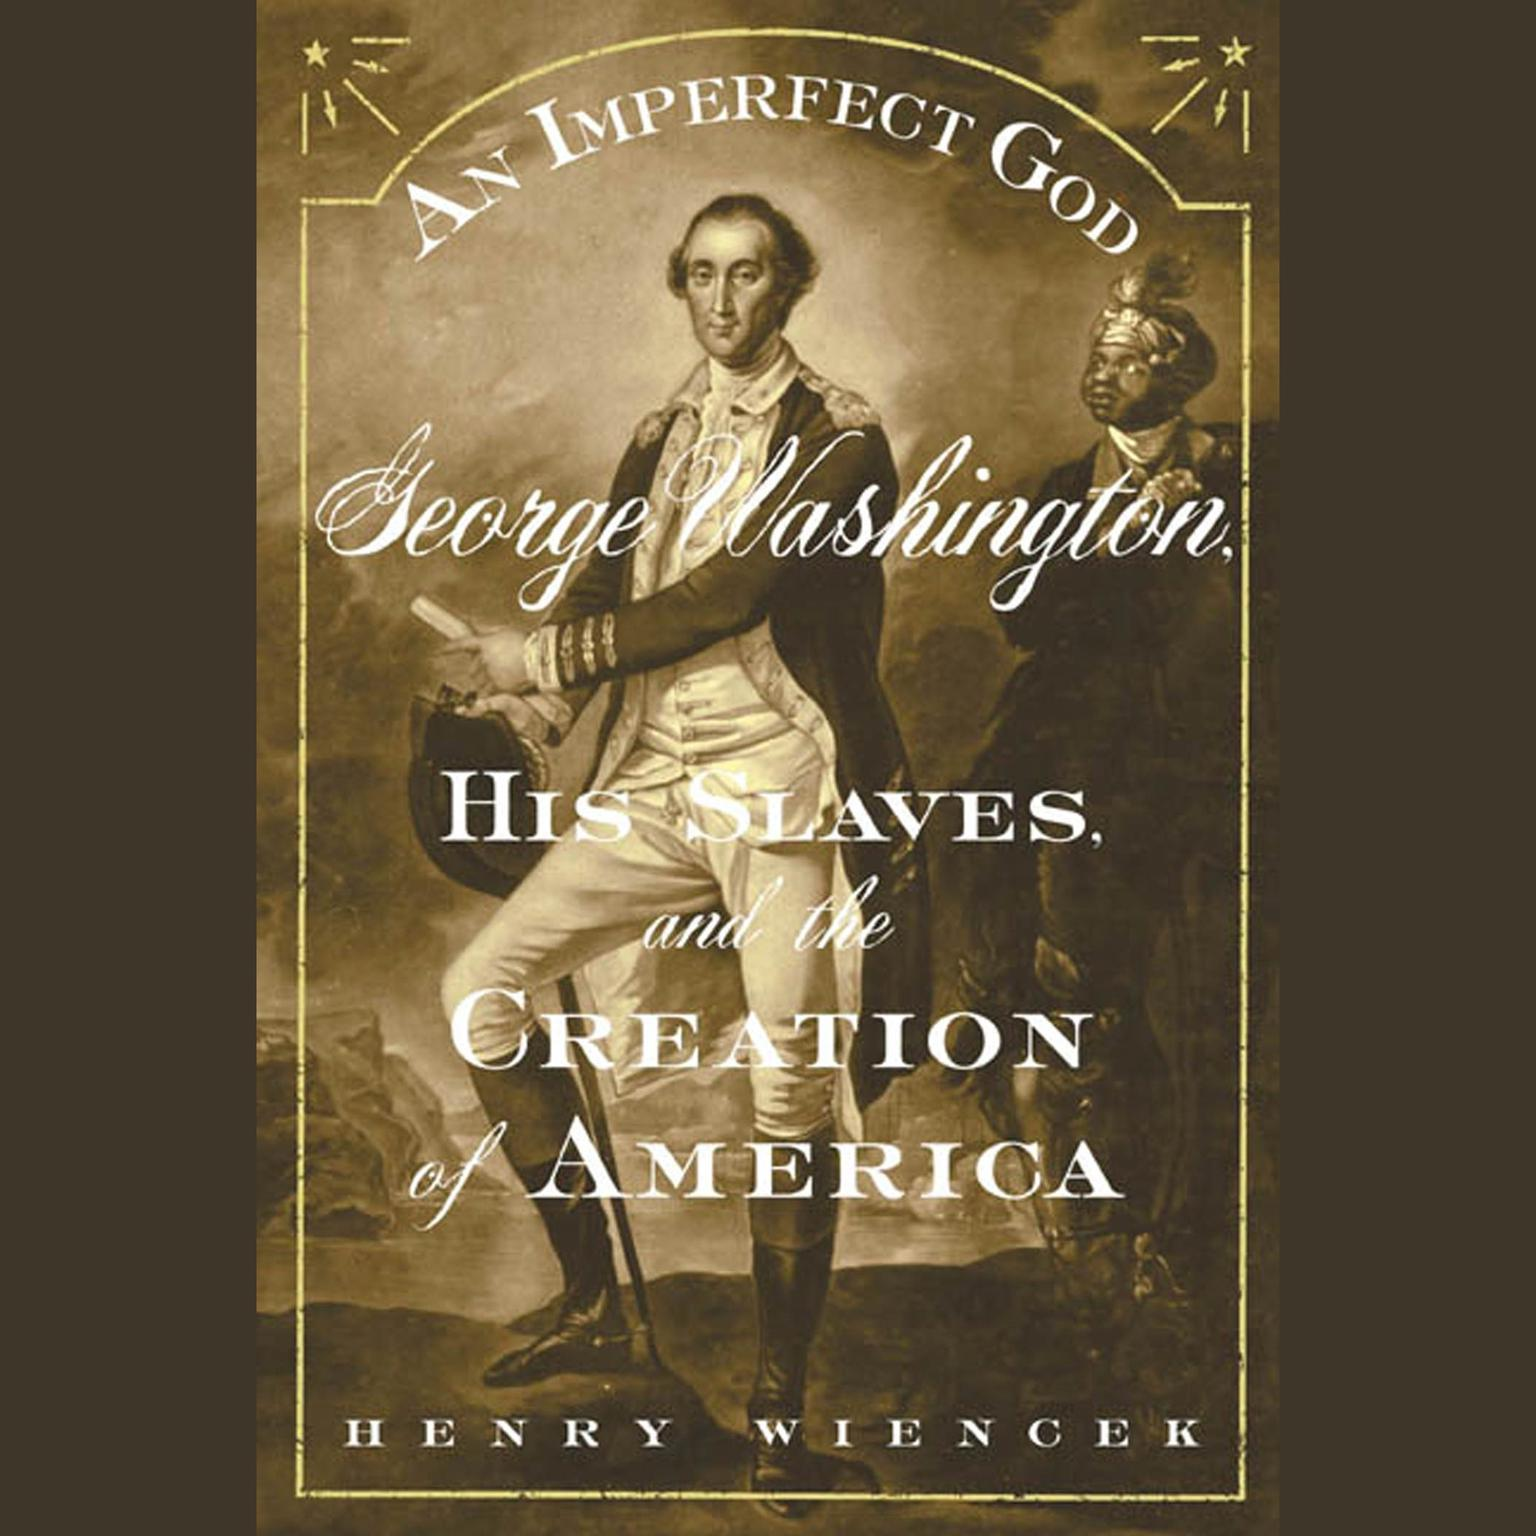 Printable An Imperfect God: George Washington, His Slaves, and the Creation of America Audiobook Cover Art